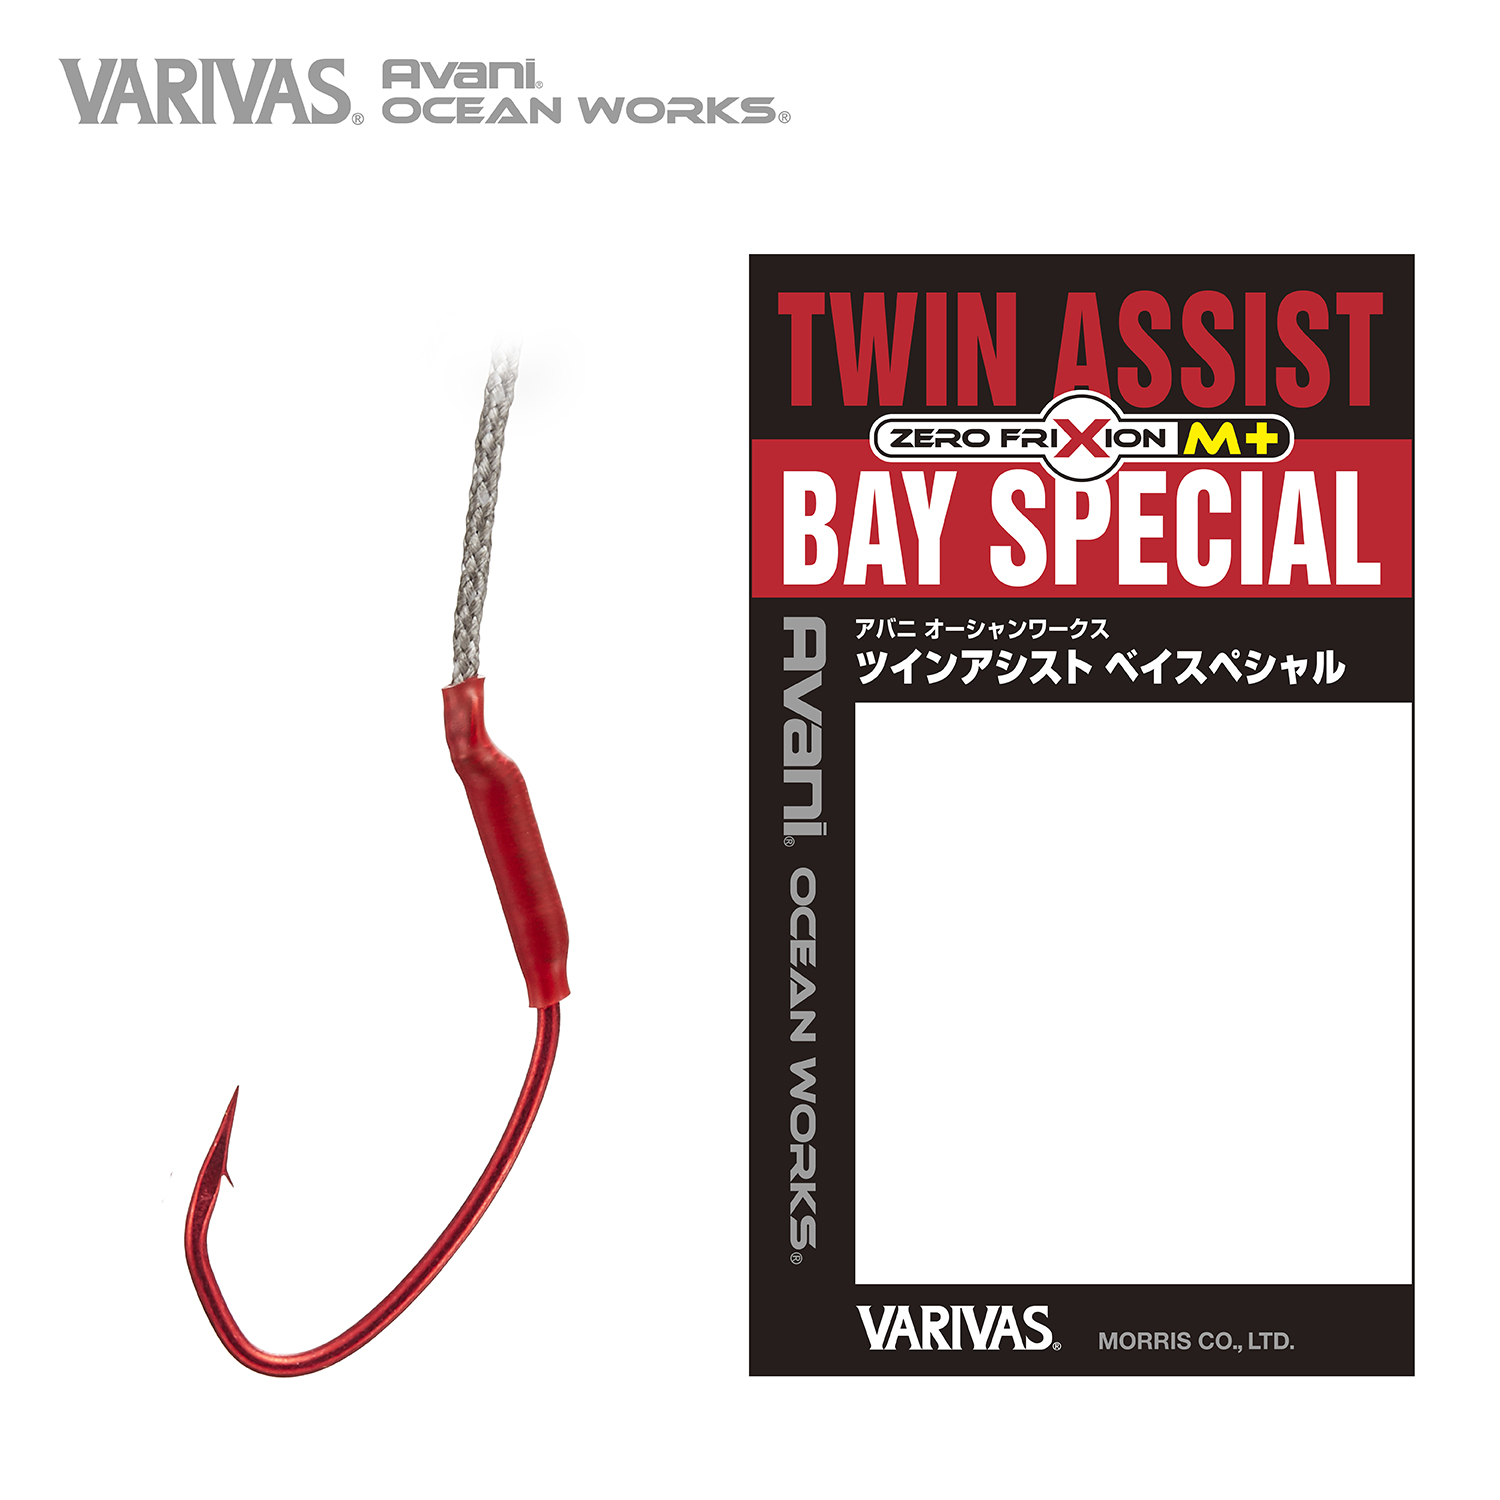 Avani OCEAN WORKS TWIN ASSIST